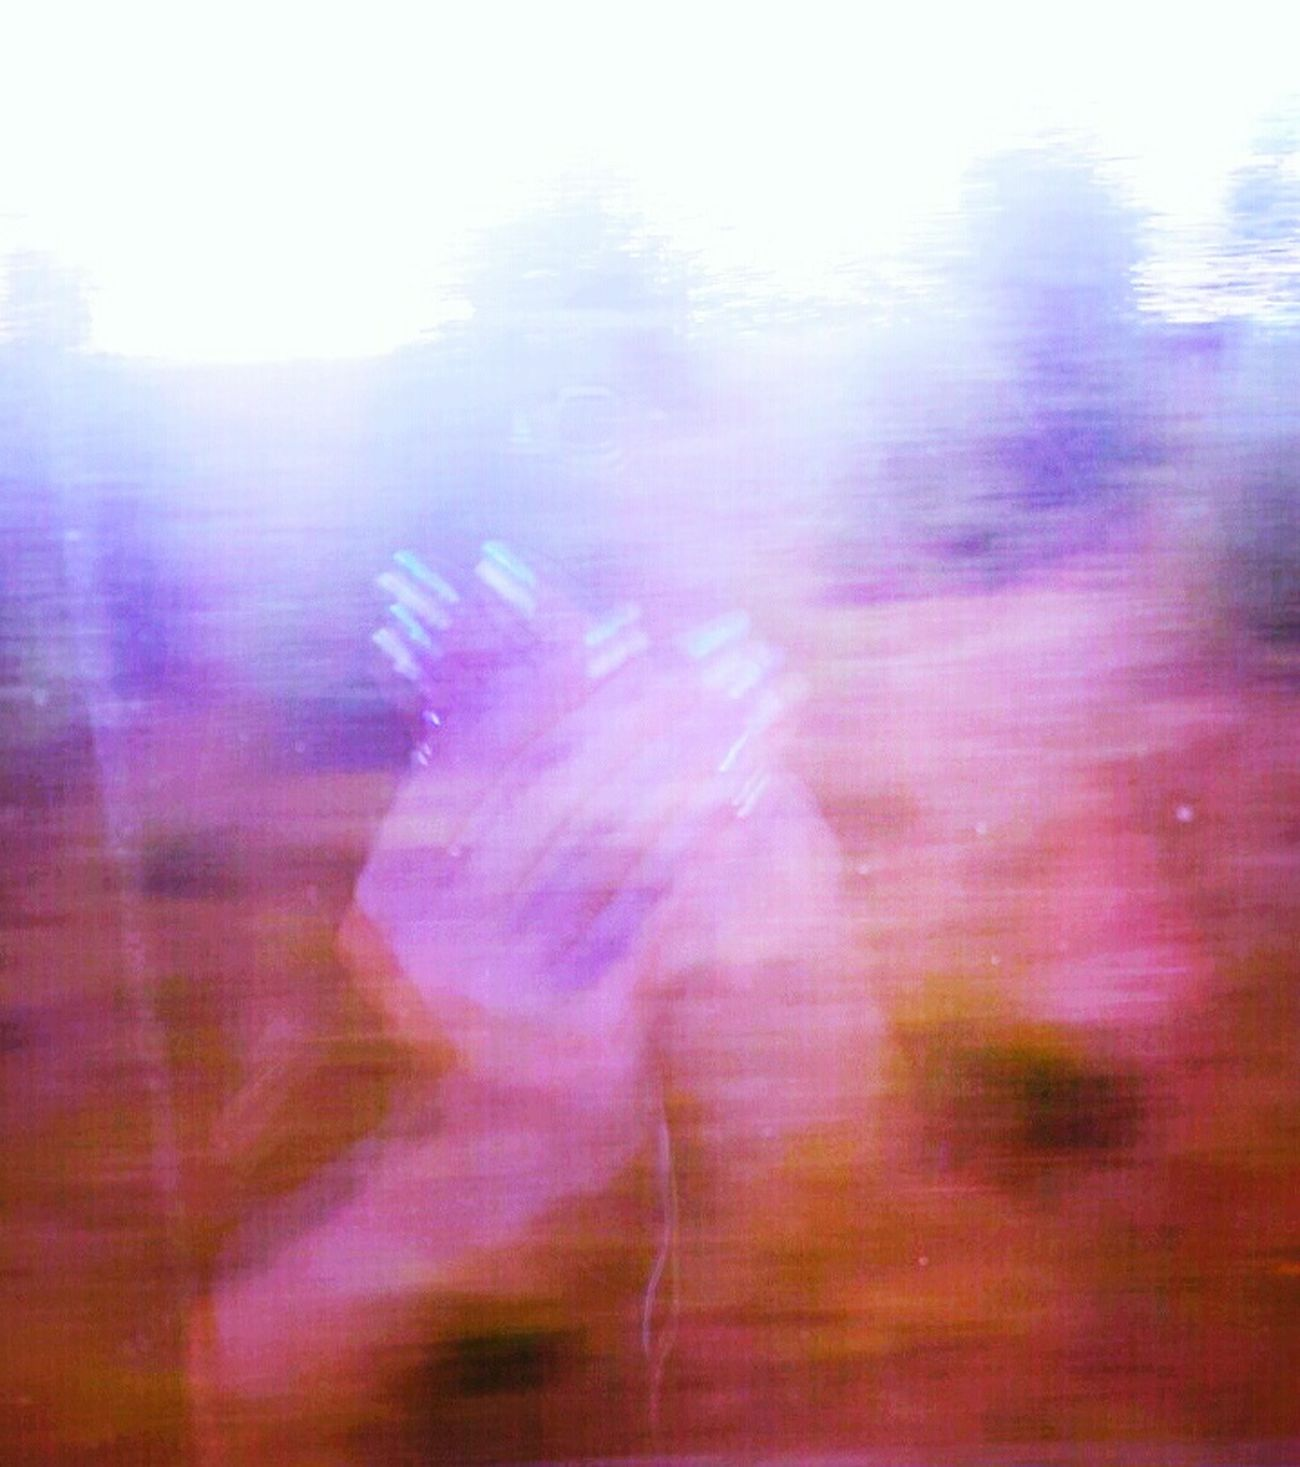 Trippy Blur Hands Train Ride Colors Splash EyeEm Edits Abstract Art Photography Artsy Artphoto Mixture  Style Whatdoyousee Dreaming Daydream Inspirational Mindful